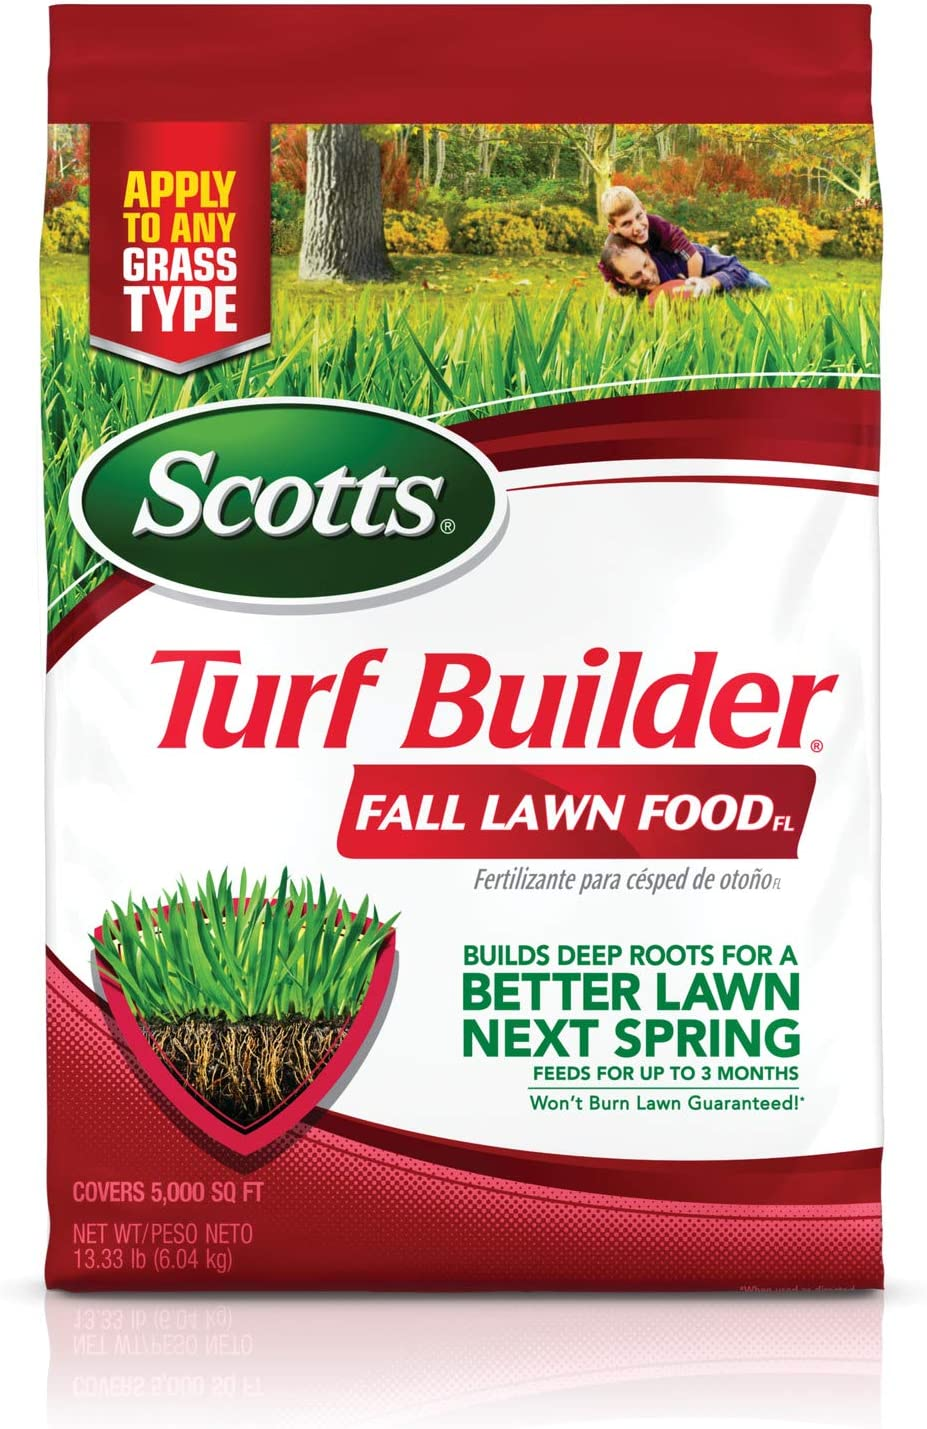 Scotts Turf Builder Fall Lawn FoodFL - 5,000 sq. ft., Lawn Fertilizer Feeds Grass for a Better Lawn Next Spring, Builds Deep Roots, for All Grass Types, 13.33 lbs.